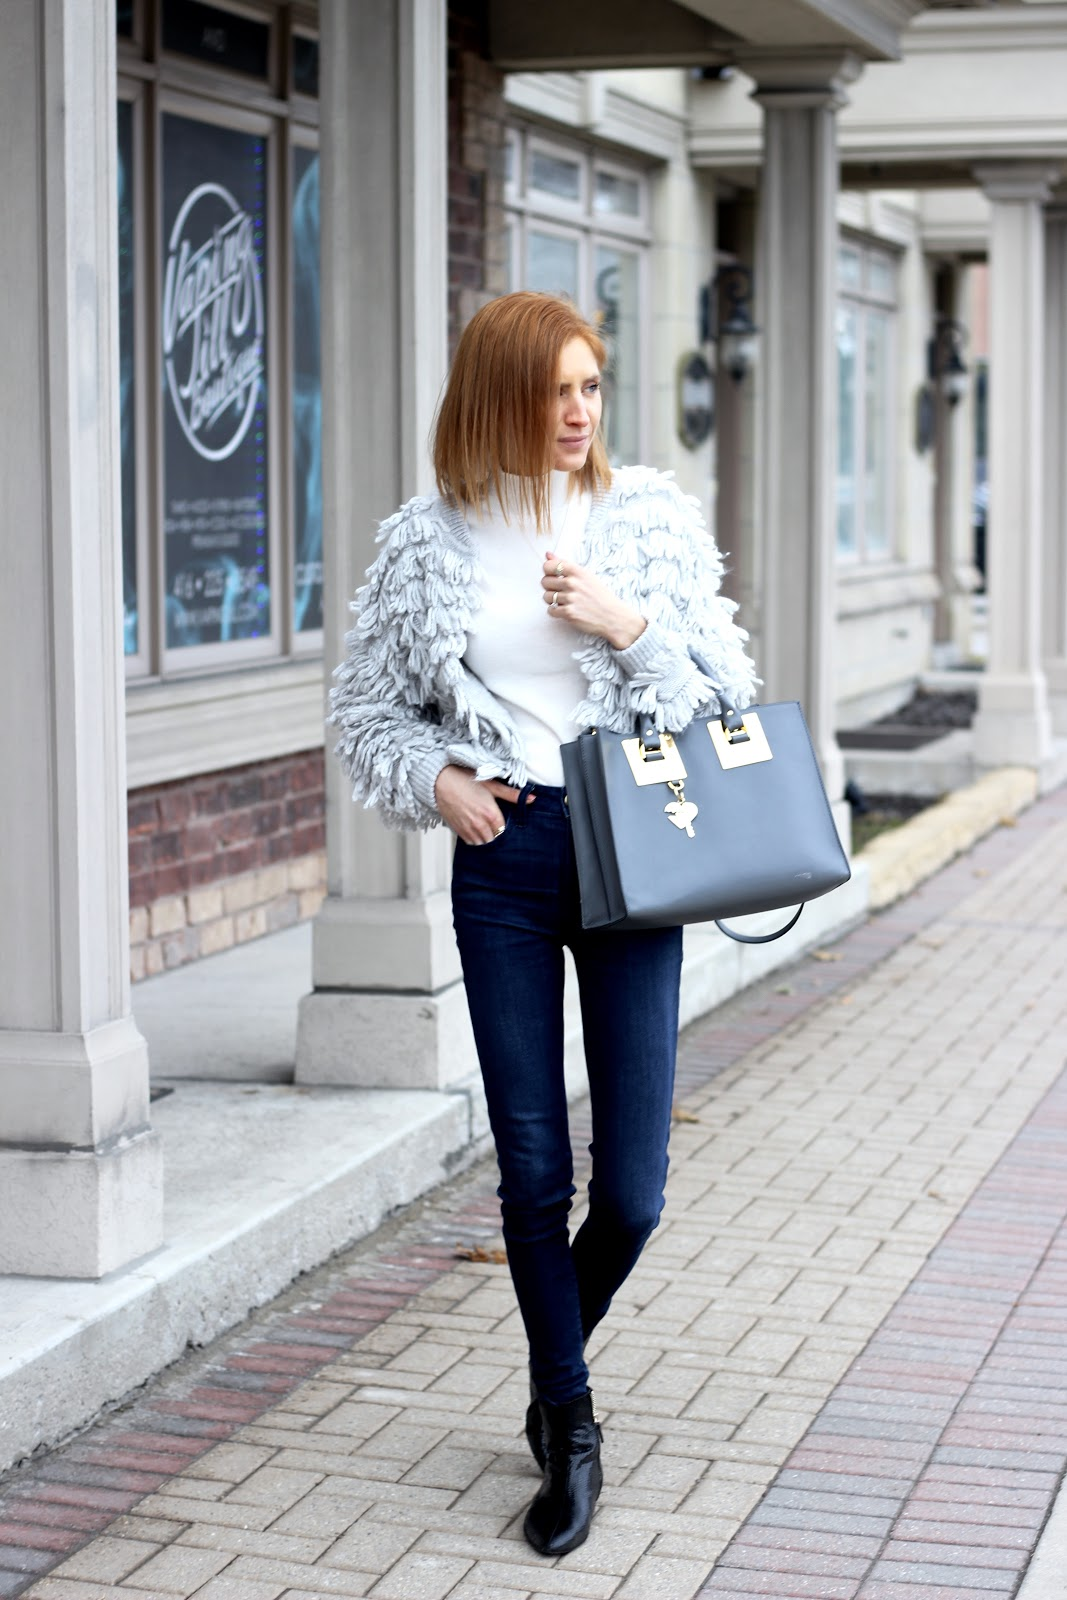 Gap Loop-Fringe Cardigan, AE denim, Zara boots, grey, Sophie Hulme, How to style a cardigan